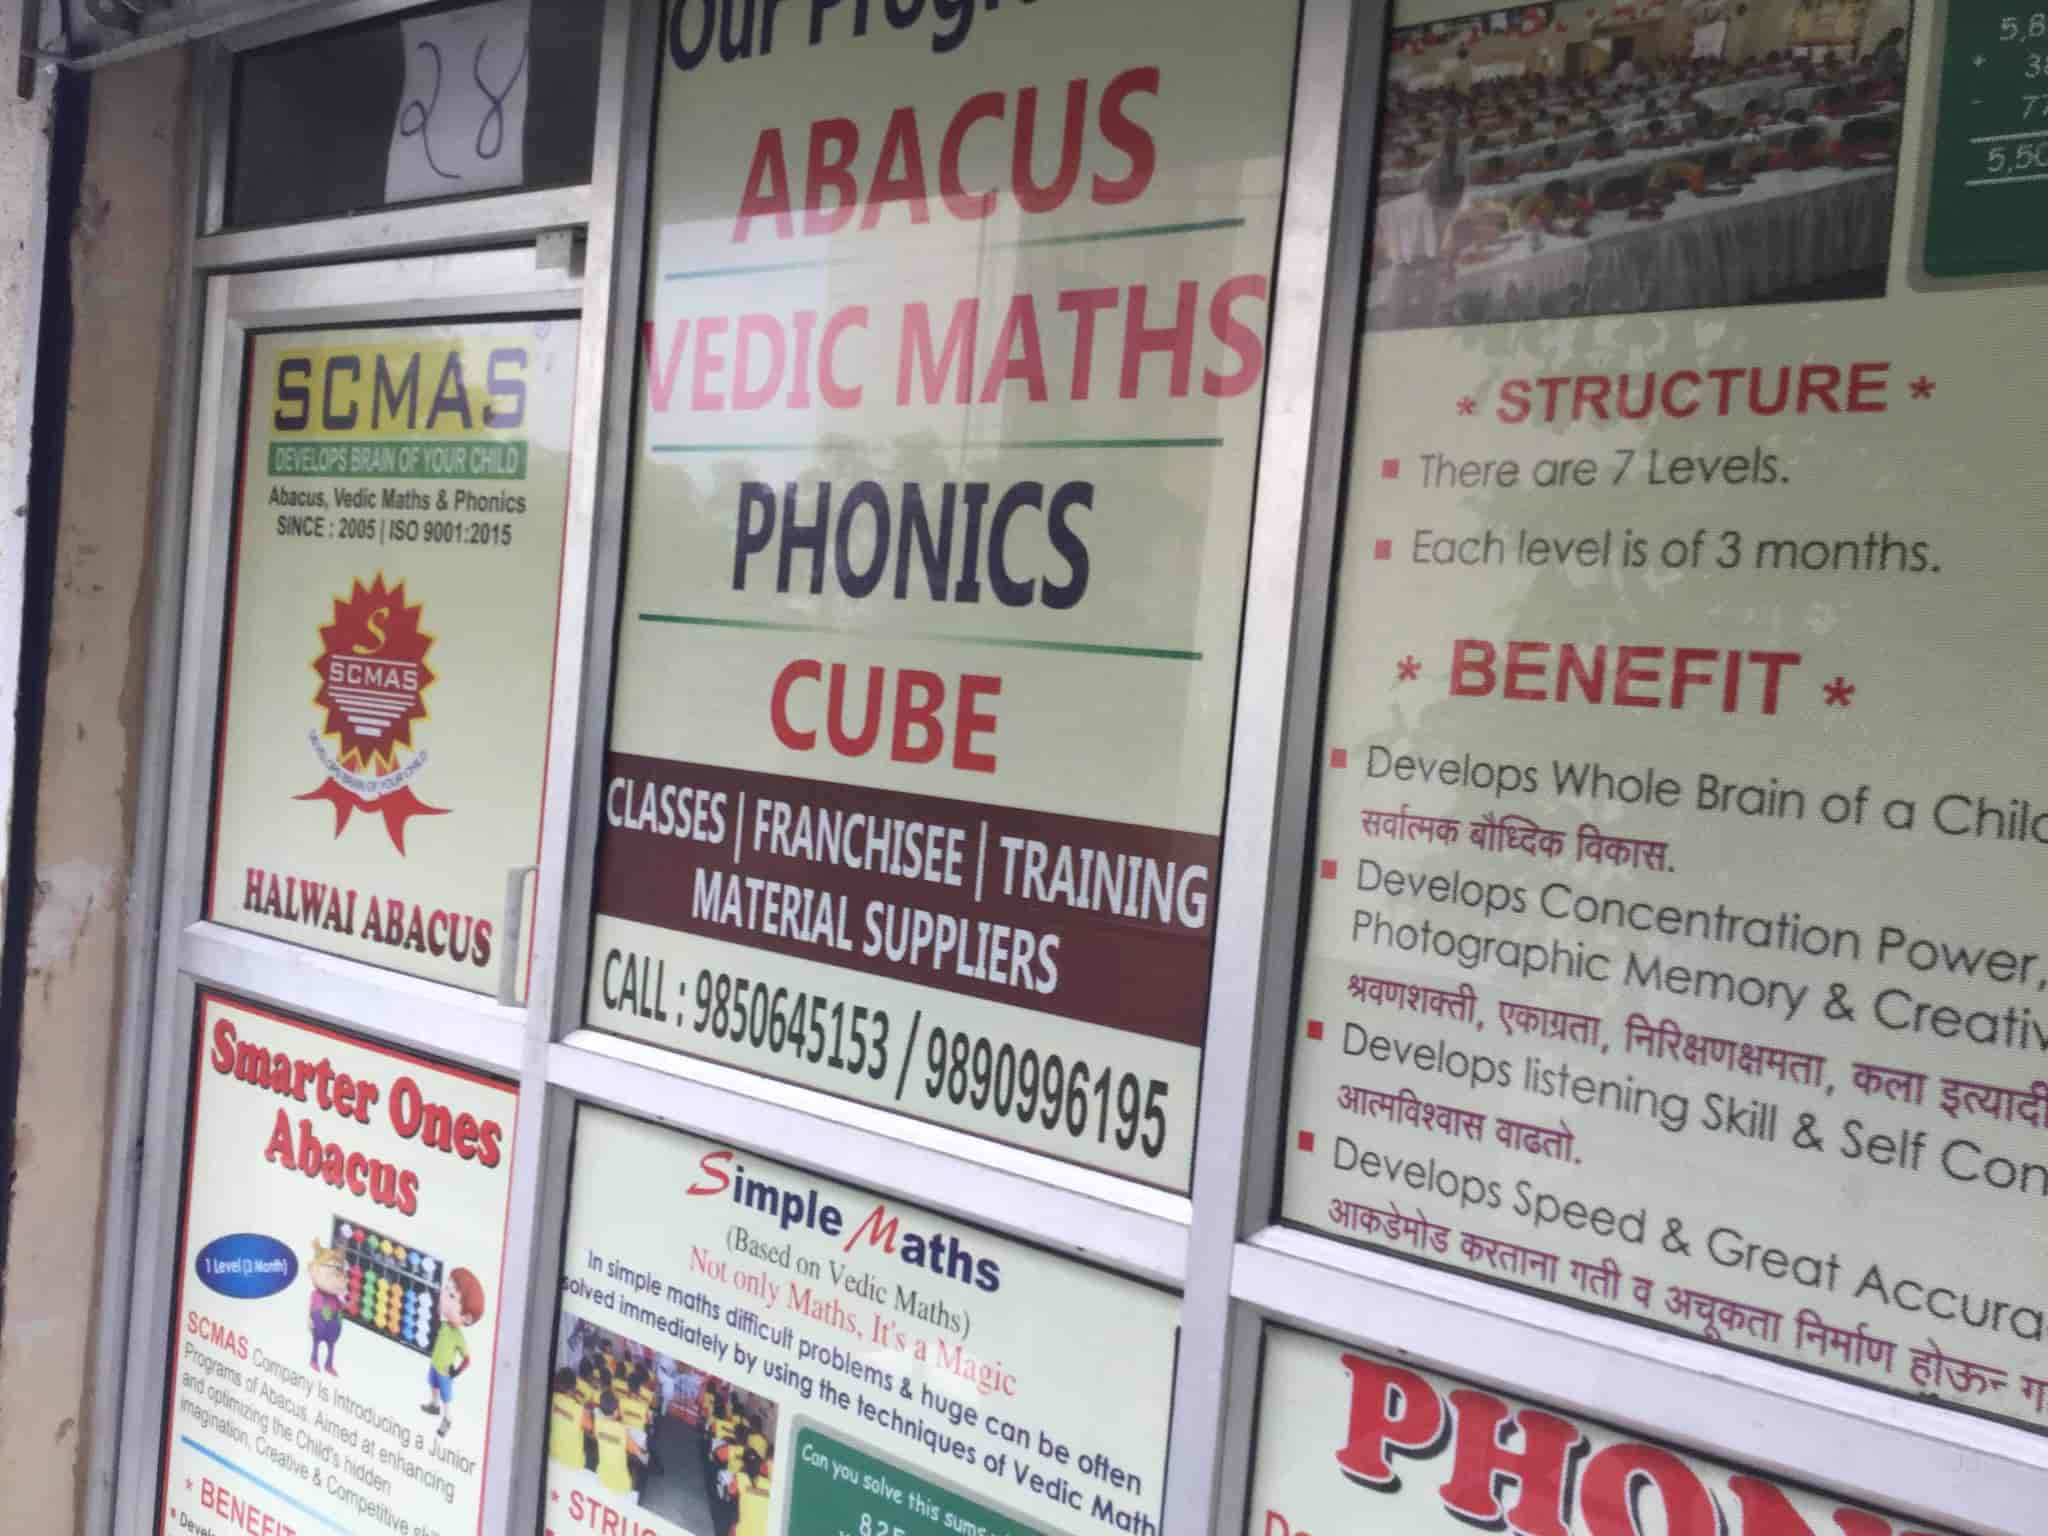 Top Vedic Maths Training Centres In Katraj Pune Best Abacus Classes Justdial